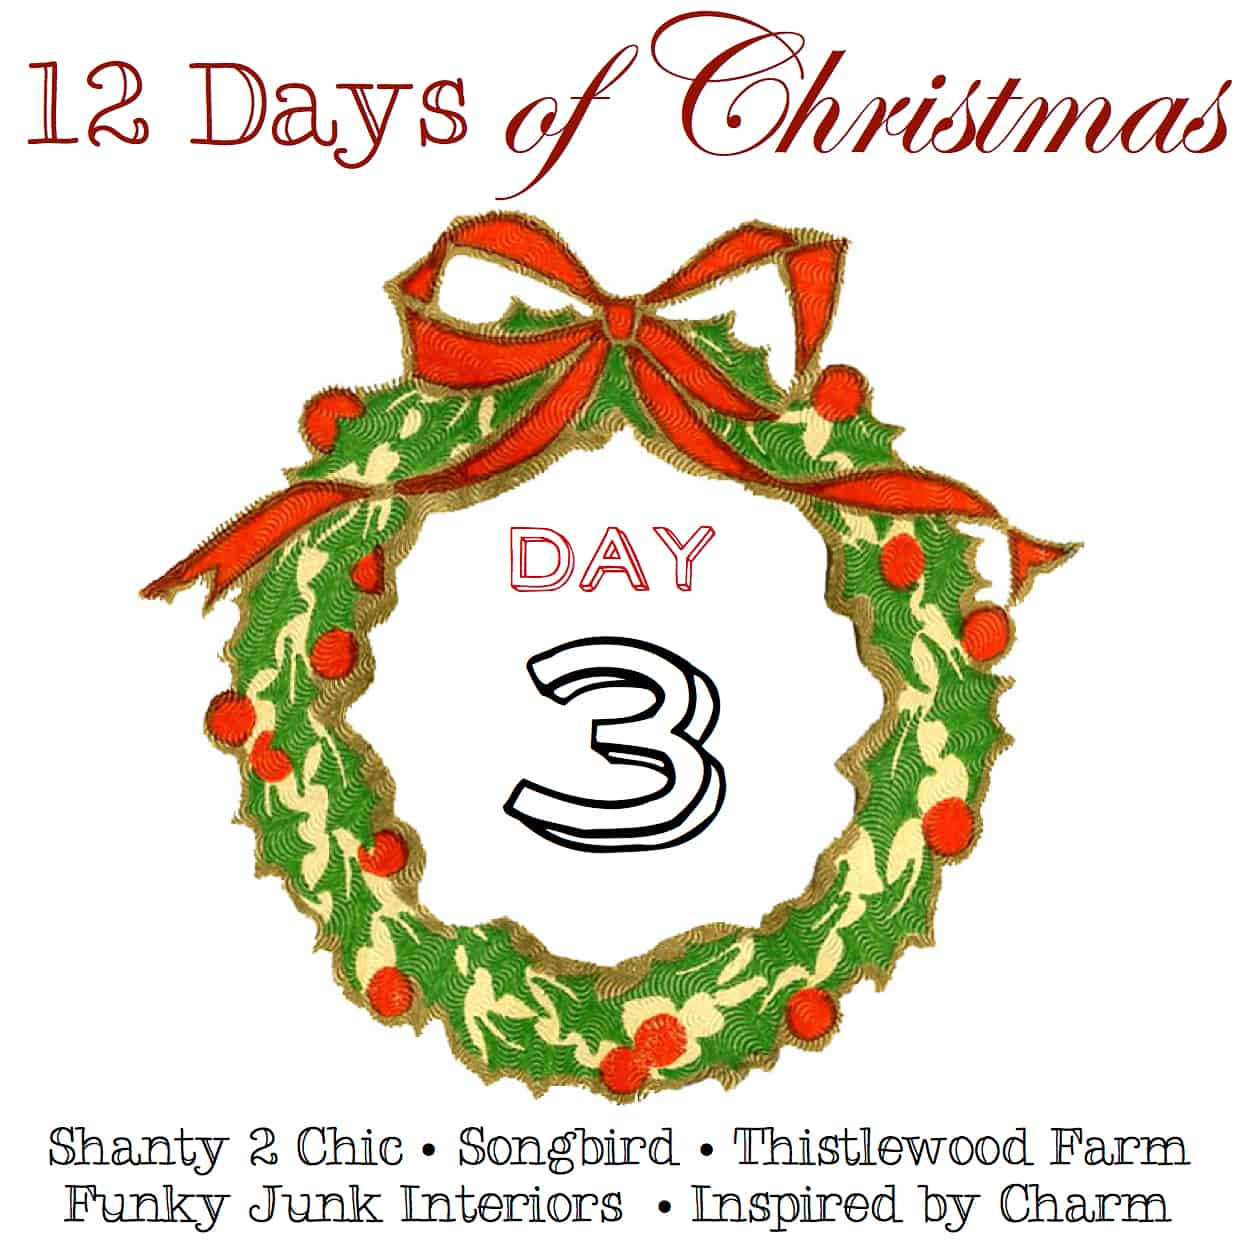 12 days of christmas - How Many Days Of Christmas Are There